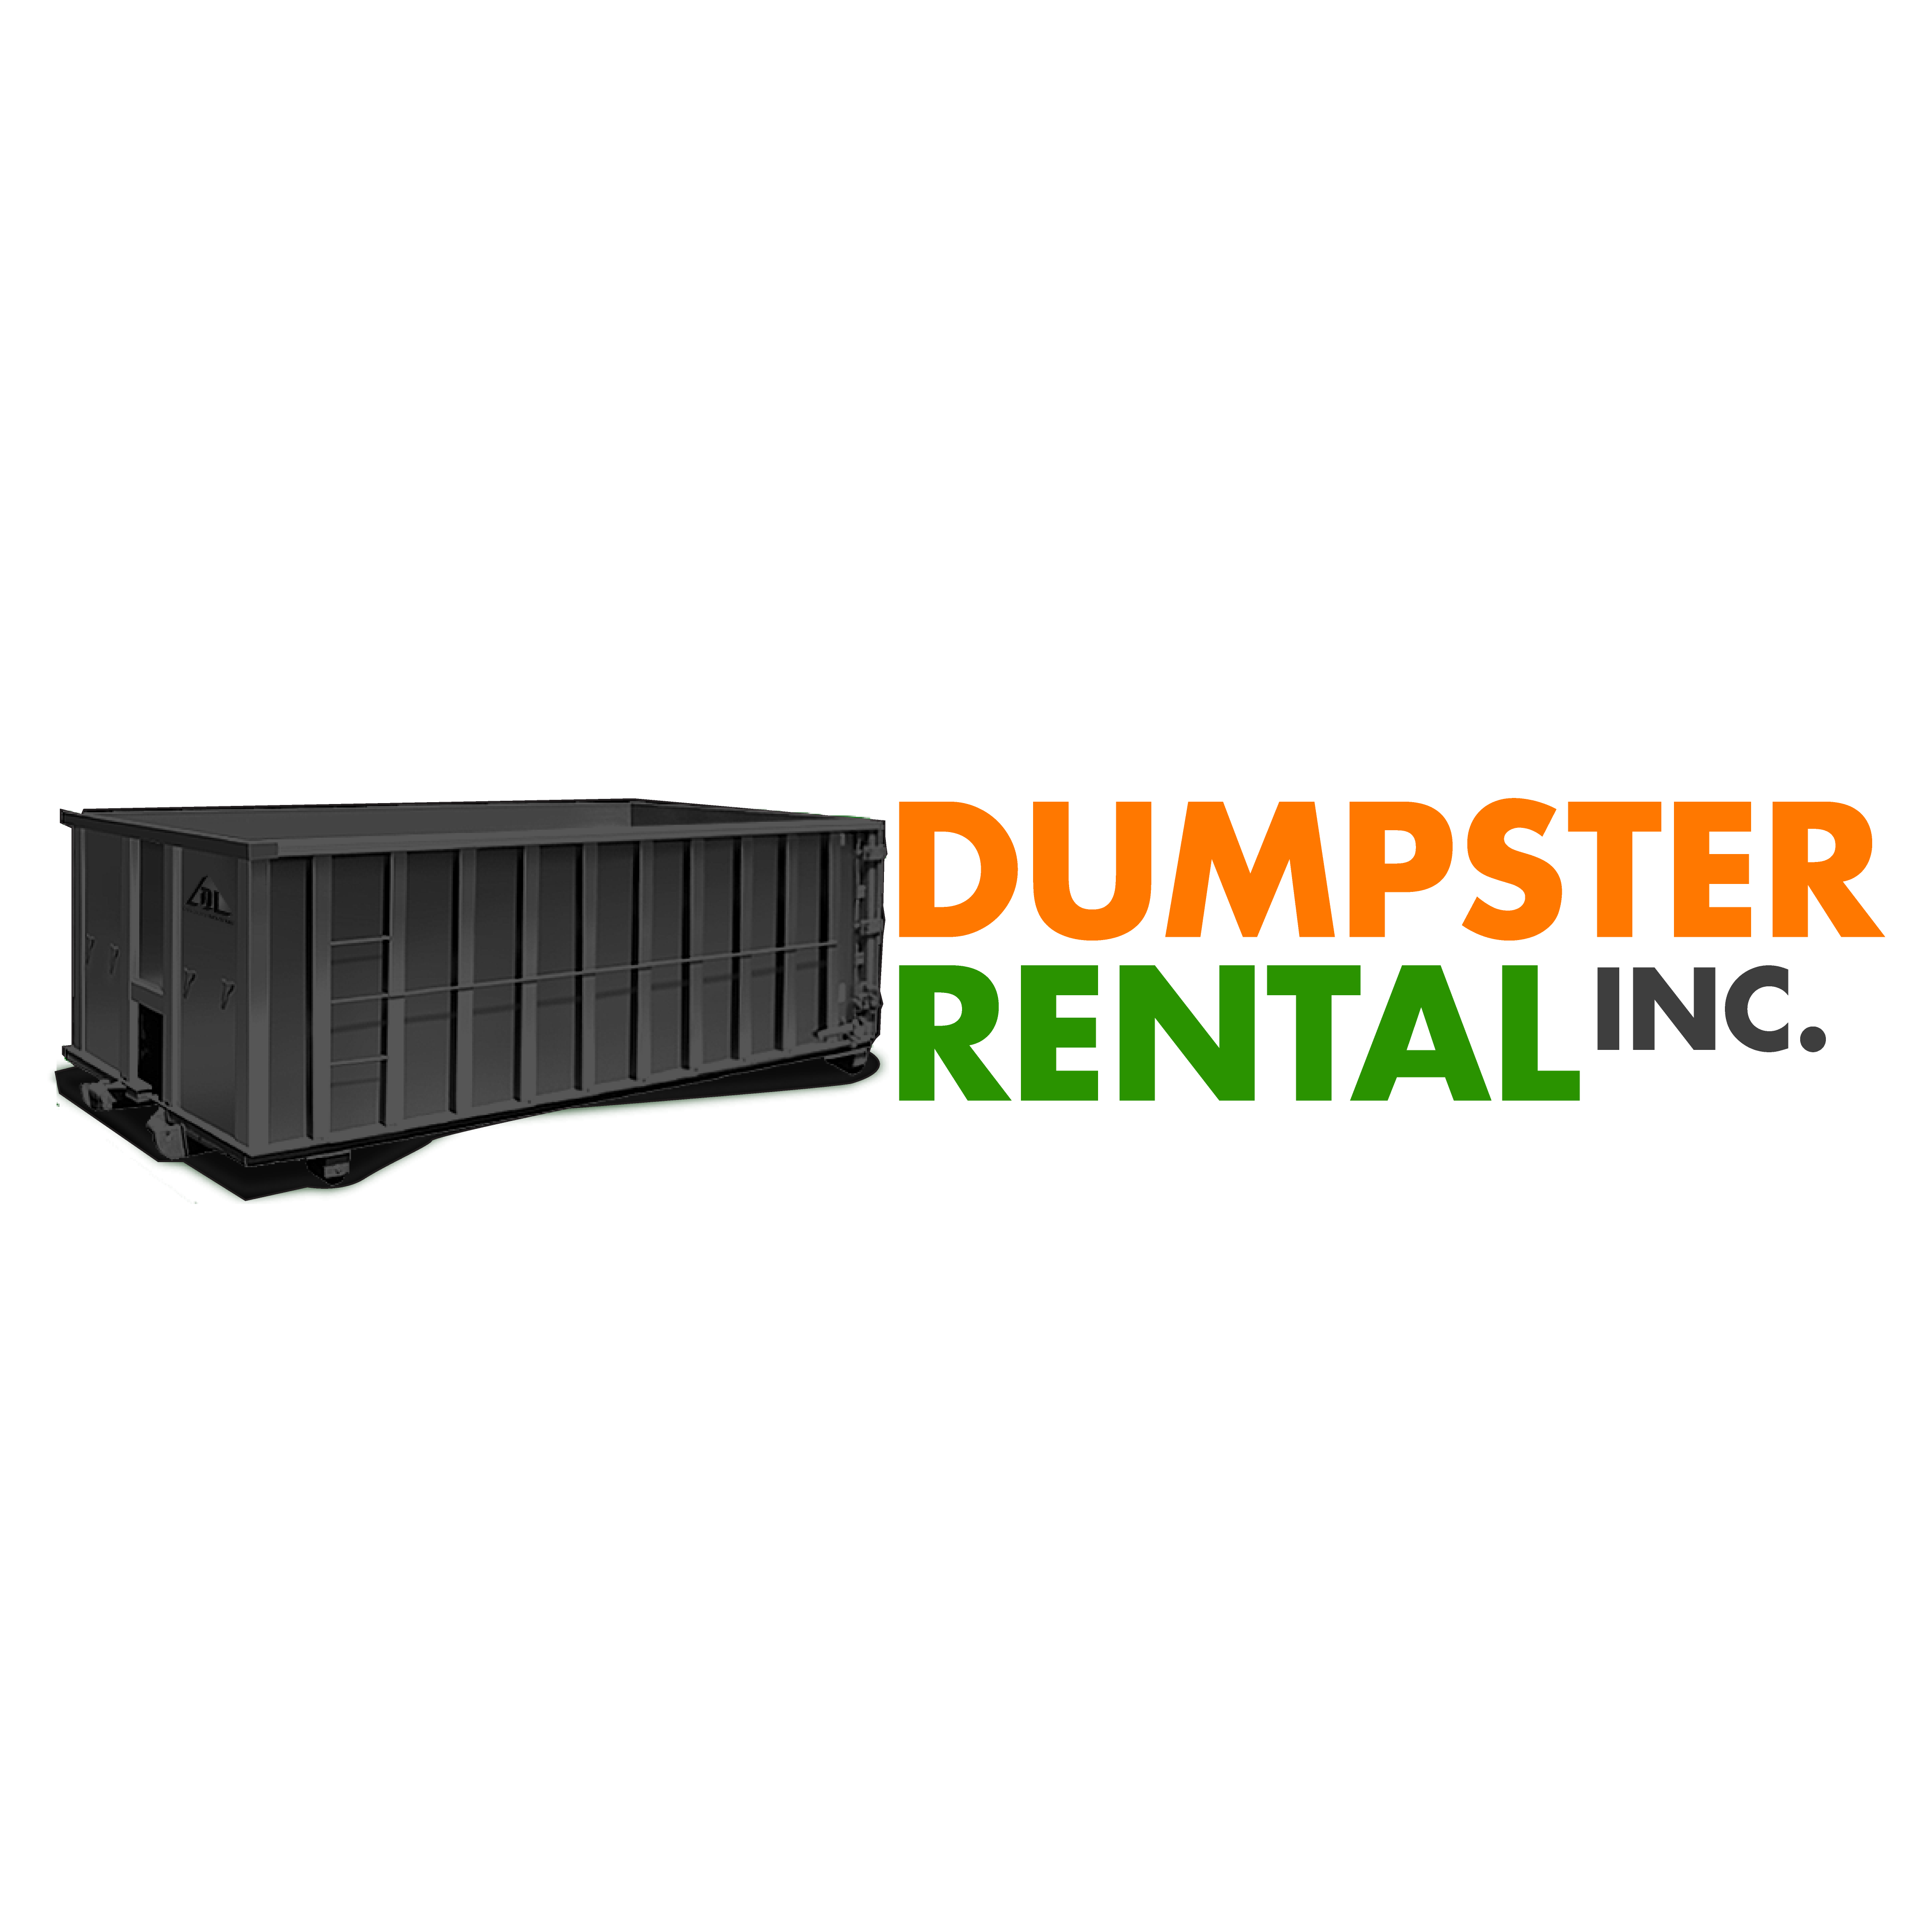 Dumpster Rental Inc In Baldwin Ny Cleaners Yellow